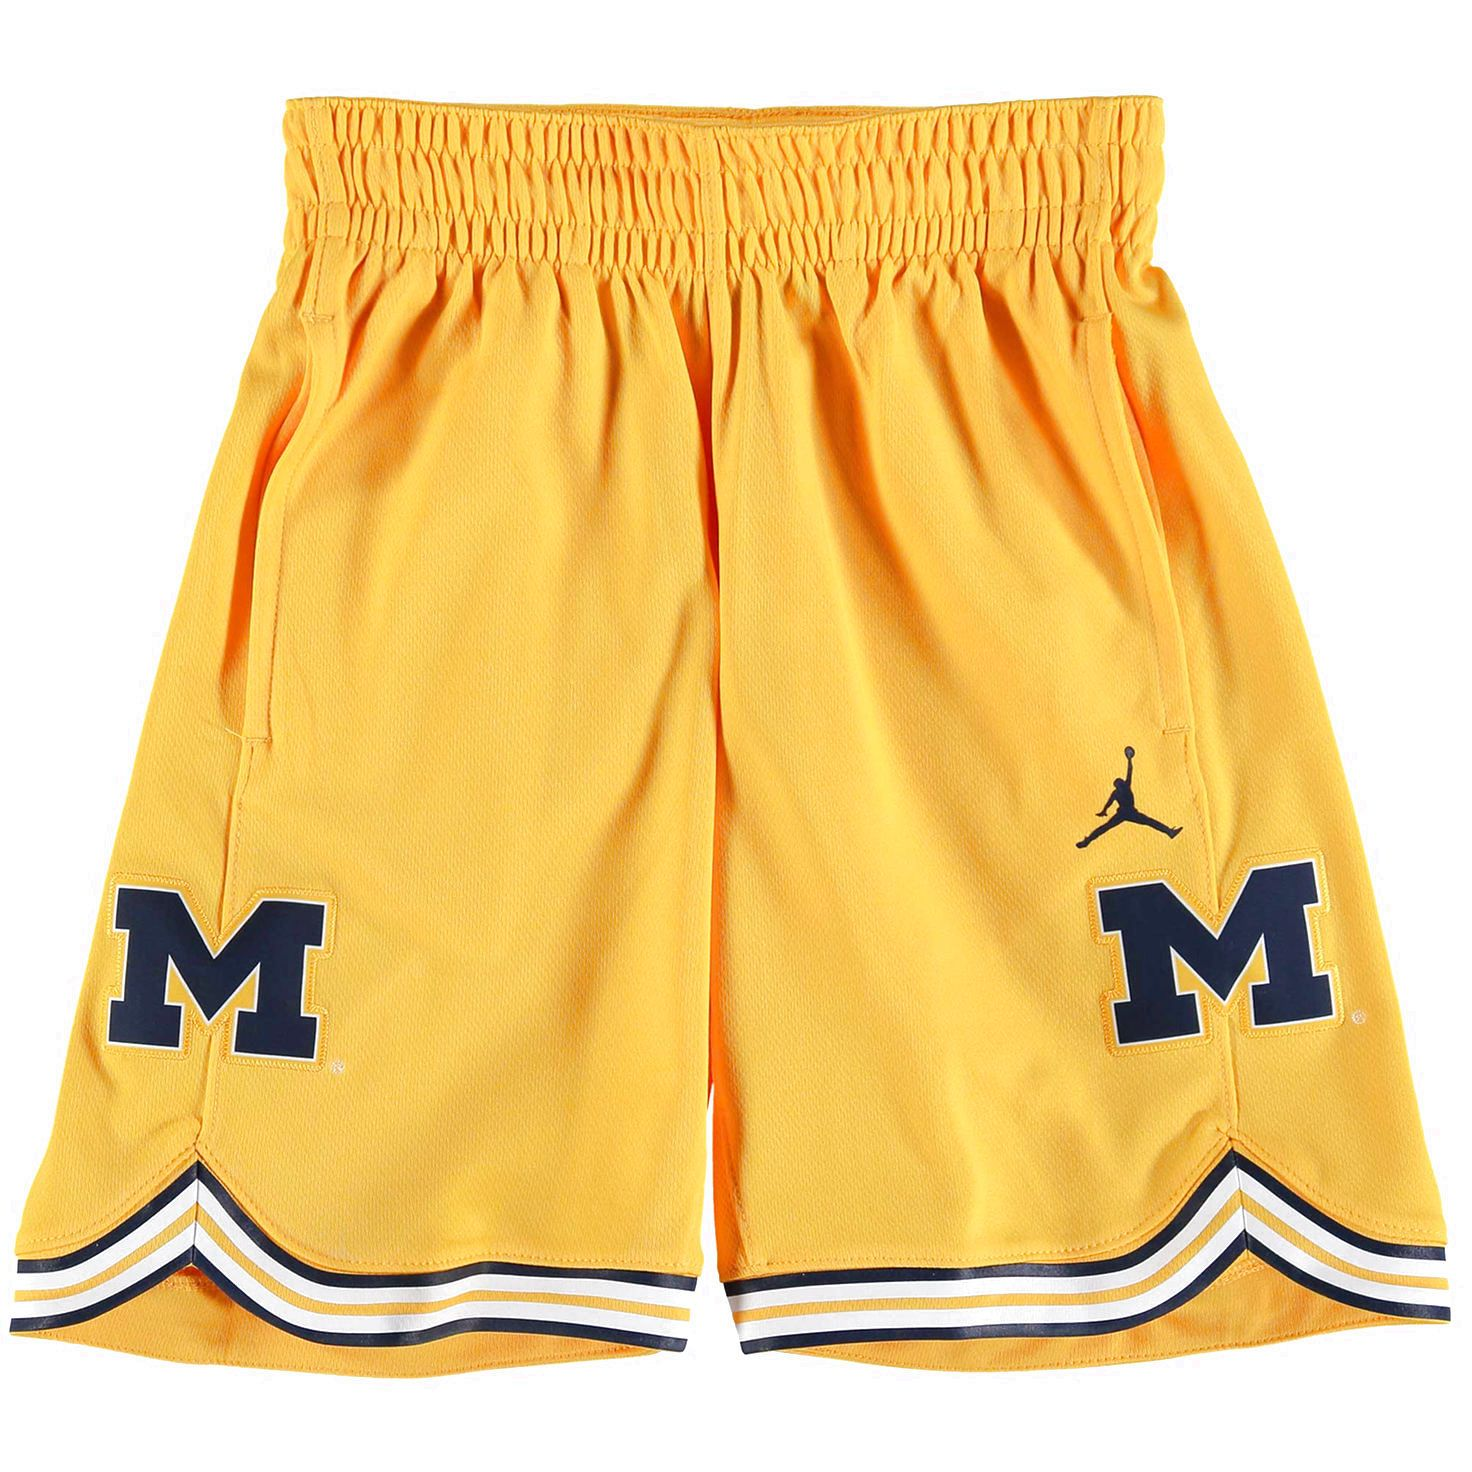 21be87a8f60 Michigan Wolverines Brand Jordan Youth Holiday Replica Basketball Shorts -  Maize -  49.99